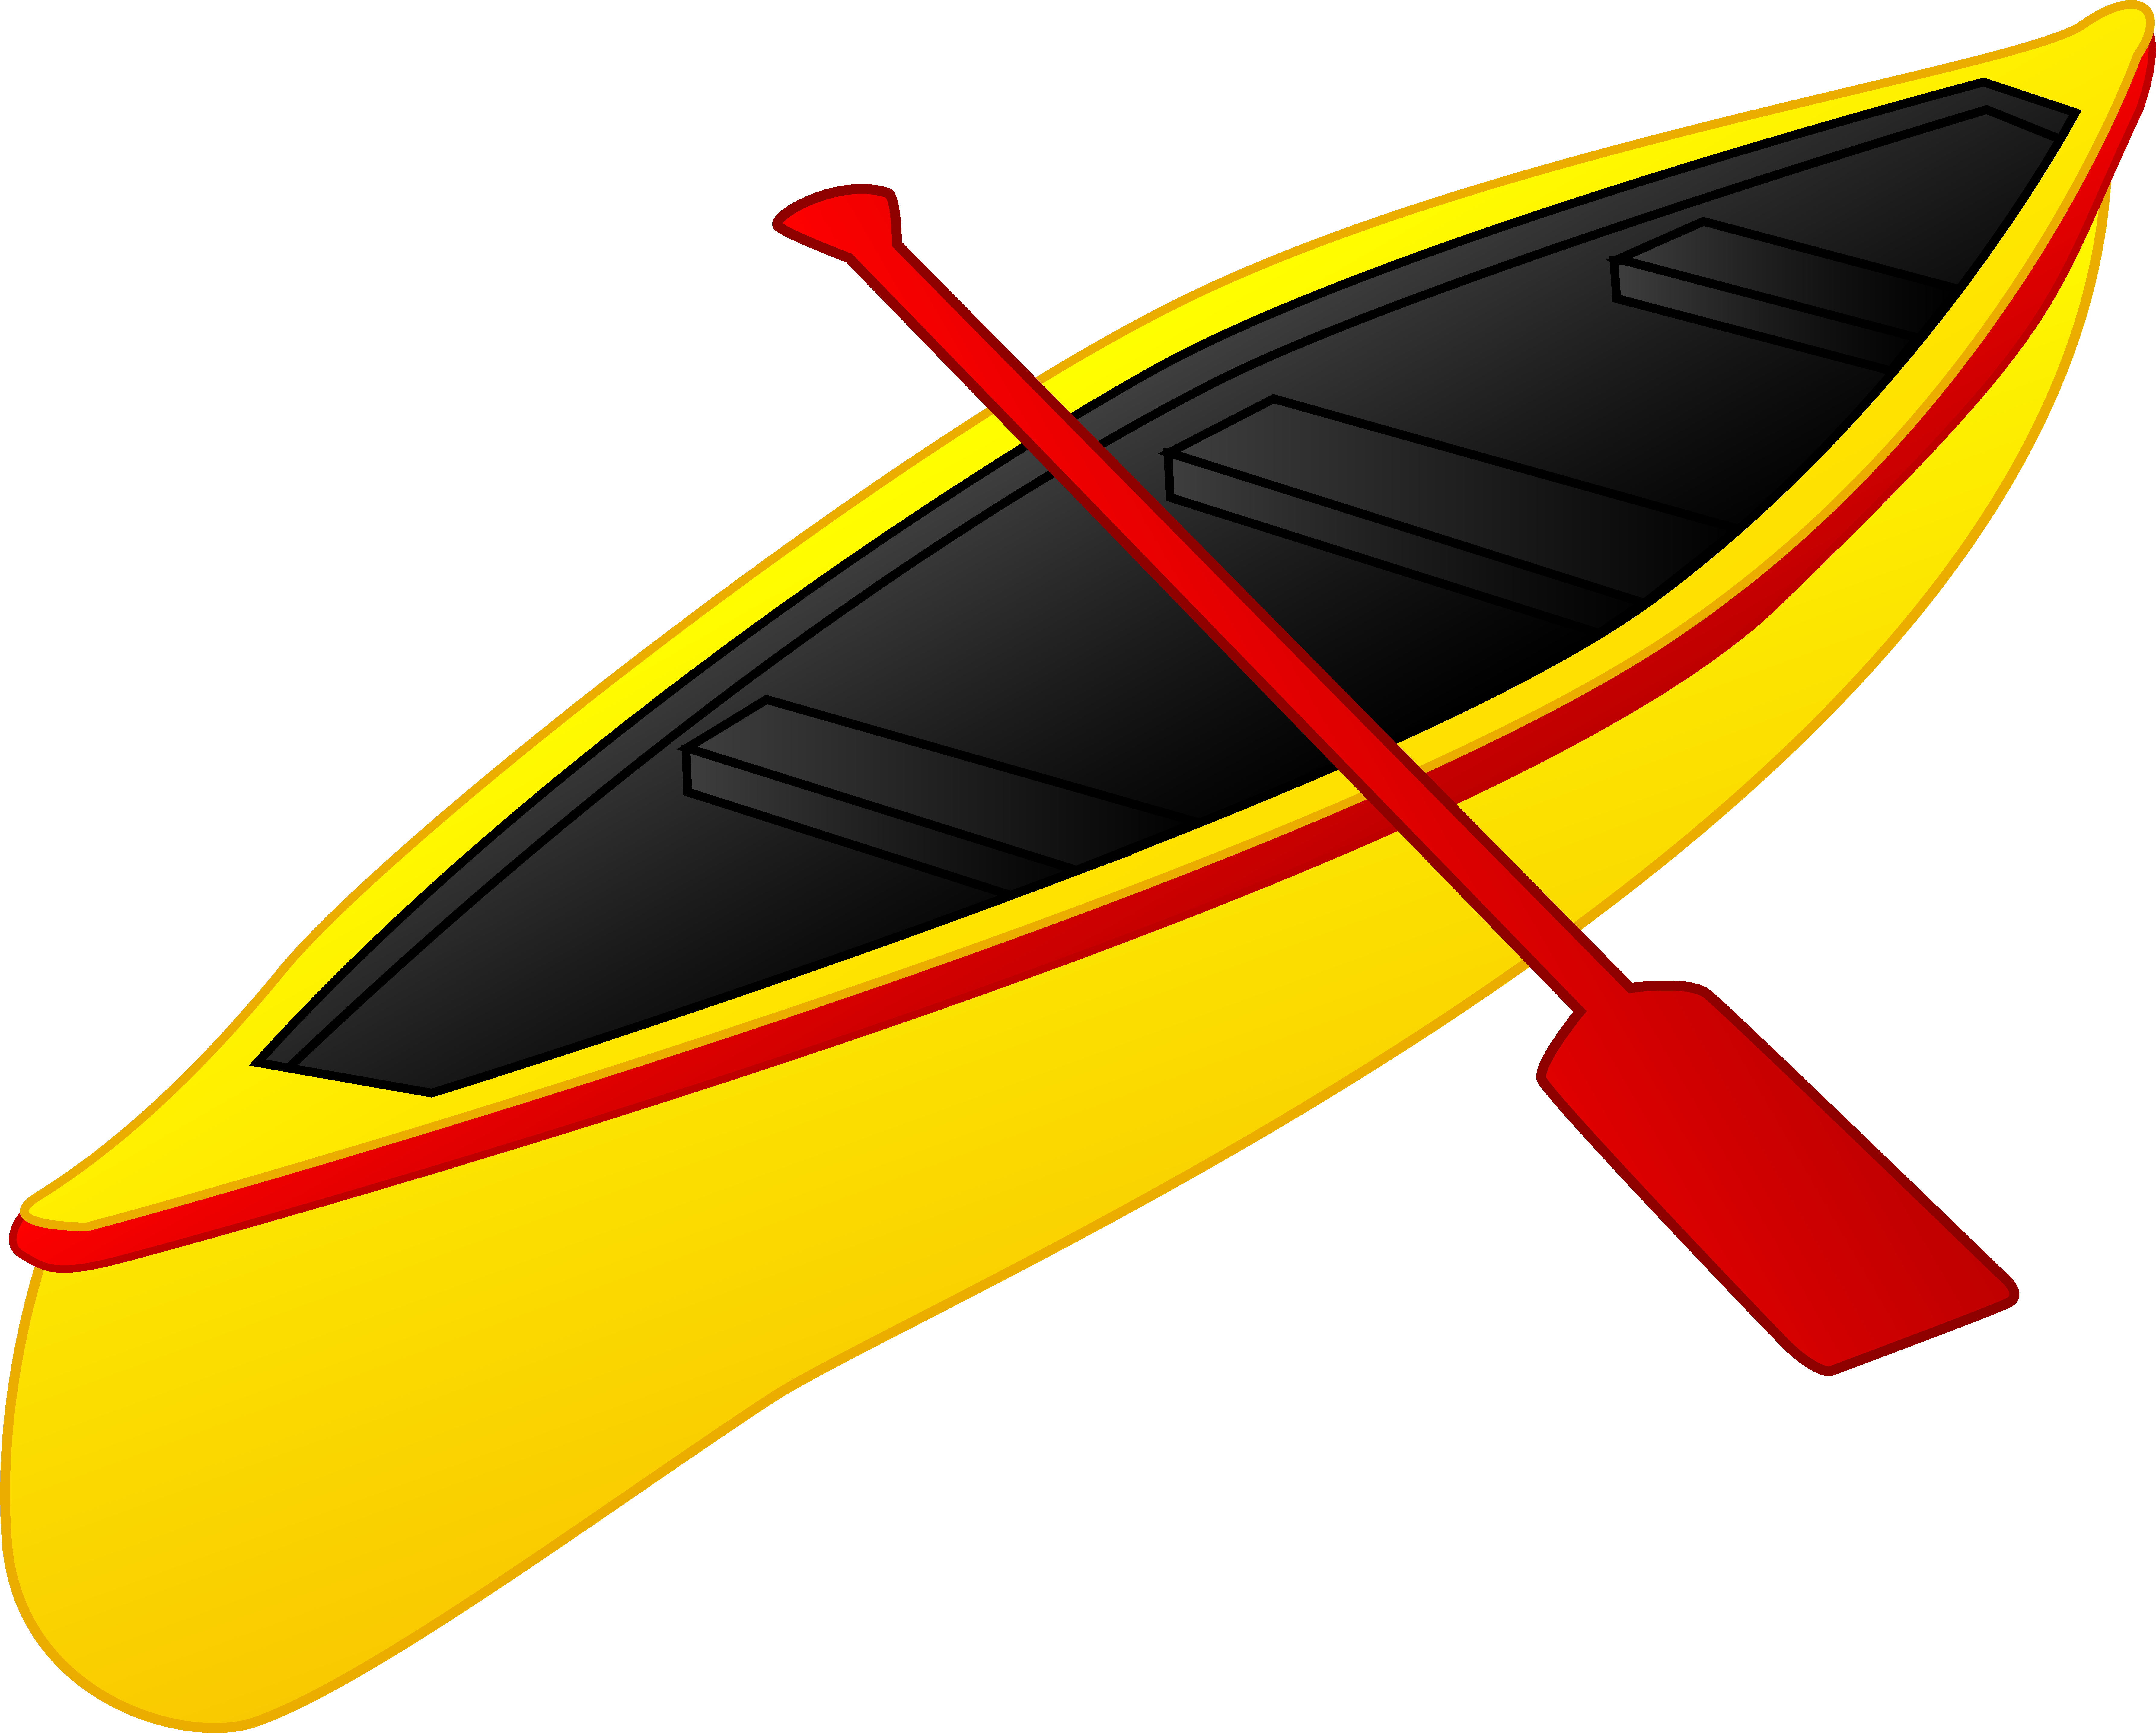 Canoe clipart #3, Download drawings